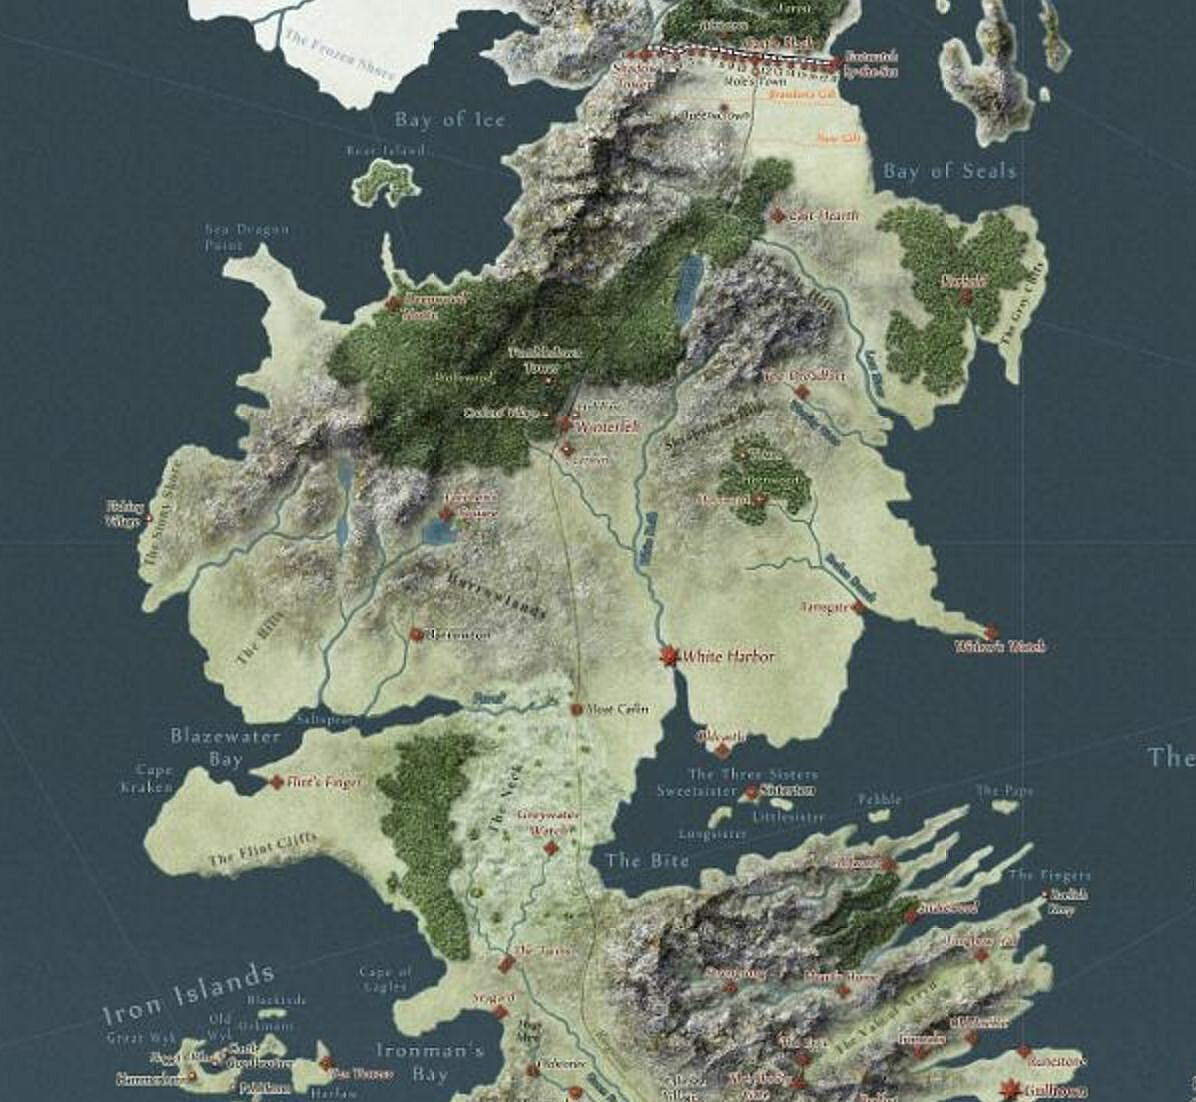 game of thrones review, game of thrones posters, game of thrones book, game of thrones winter, game of thrones diagram, game of thrones kit, game of thrones wildlings, game of thrones globe, game of thrones magazine, game of thrones win or die, game of thrones maps hbo, game of thrones garden, game of thrones war, game of thrones pins, game of thrones maps pdf, game of thrones castles, game of thrones hardcover, game of thrones white walkers, game of thrones table, game of thrones letter, on game of thrones map wall